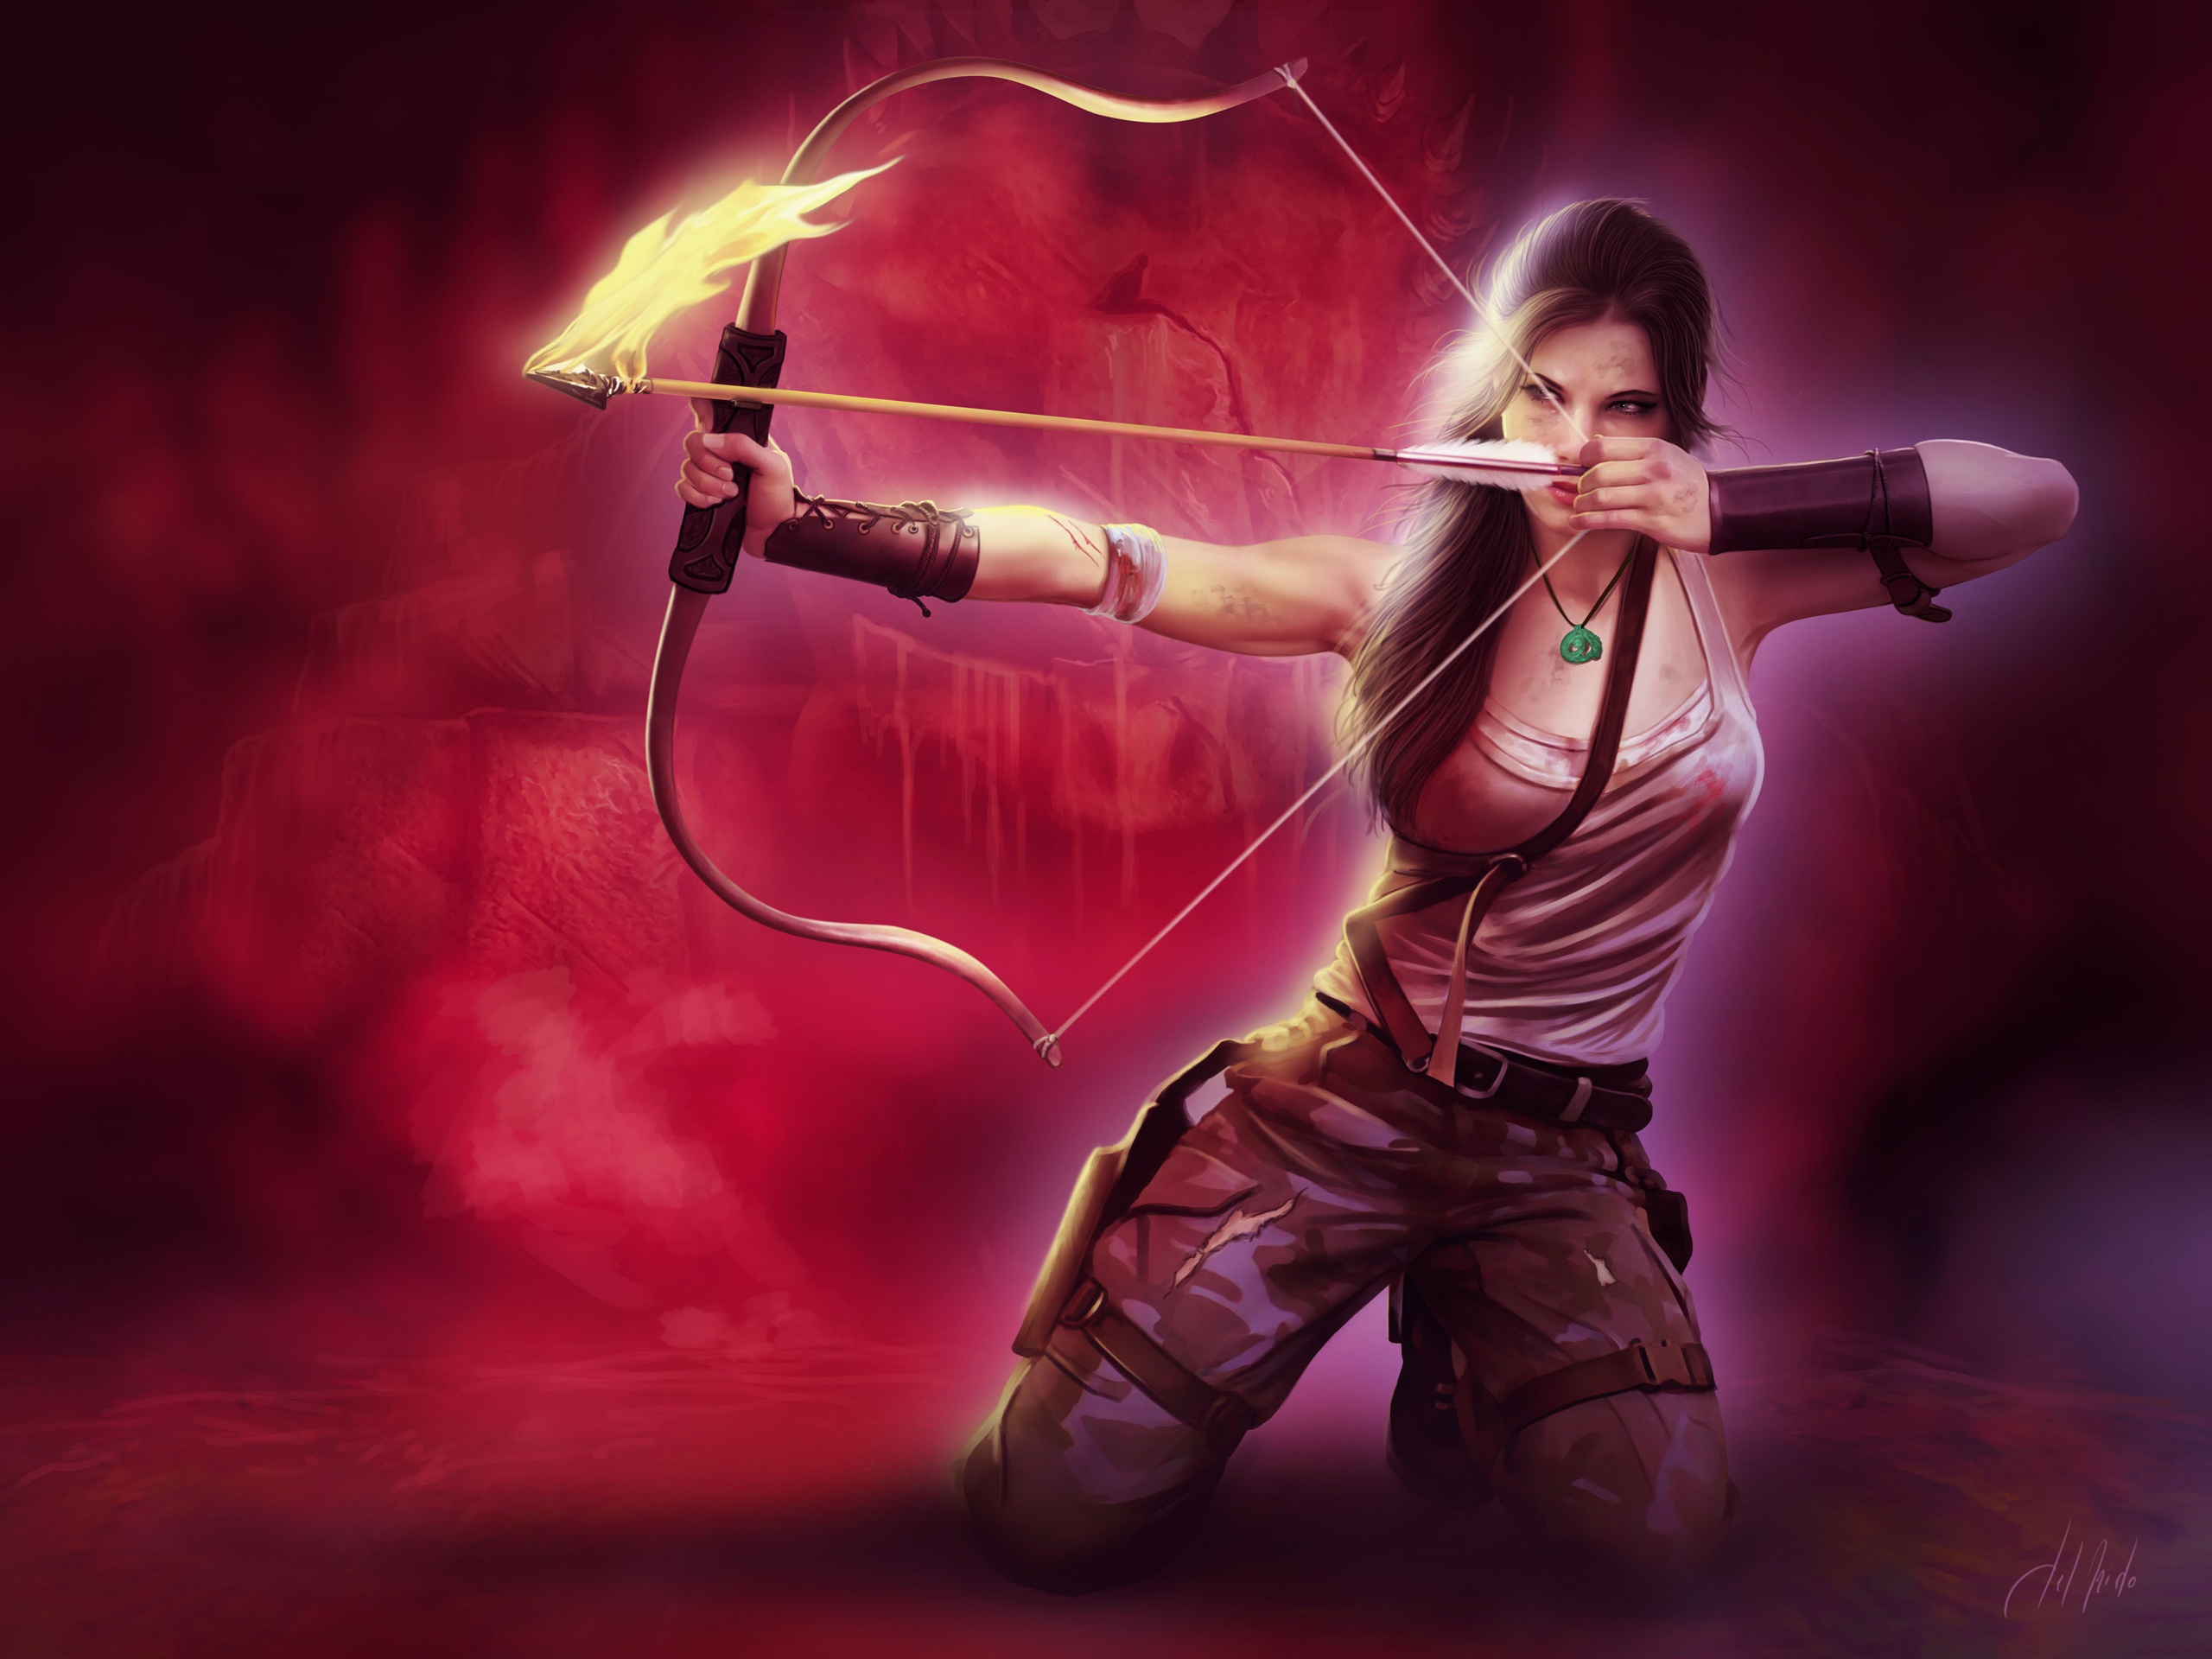 wallpaper girl bow lara - photo #7